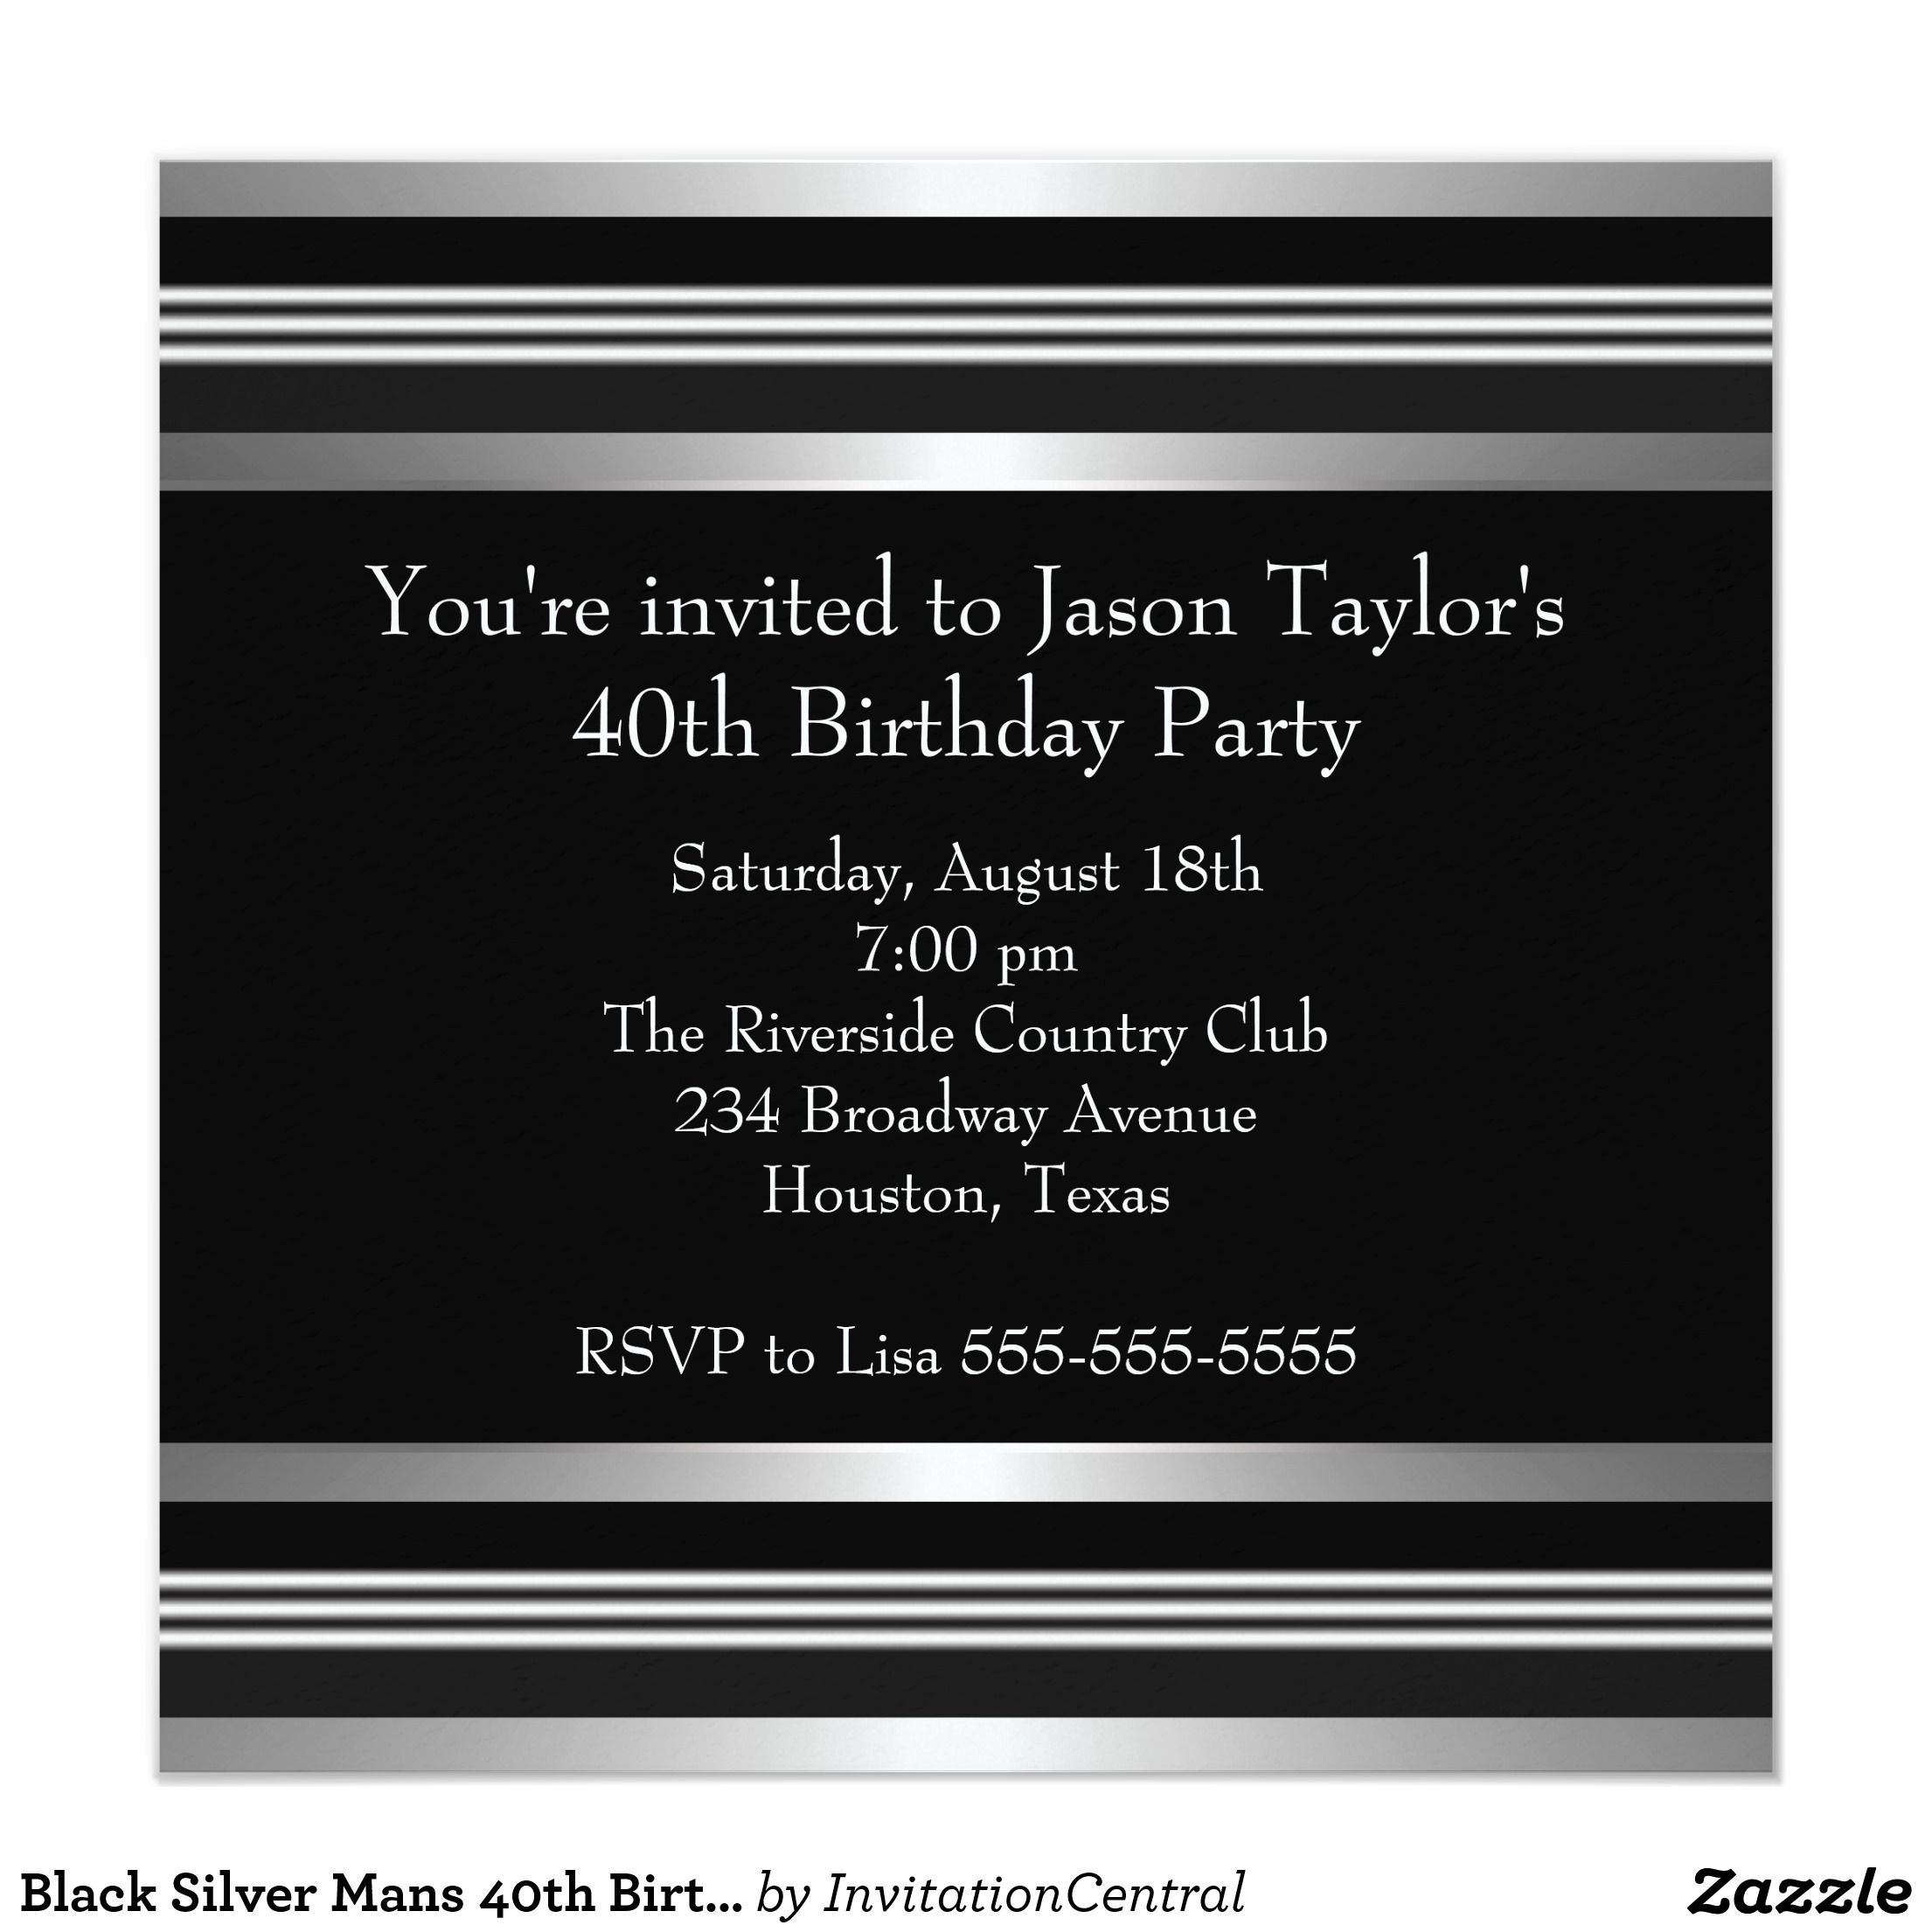 Black Silver Mans th Birthday Party Card